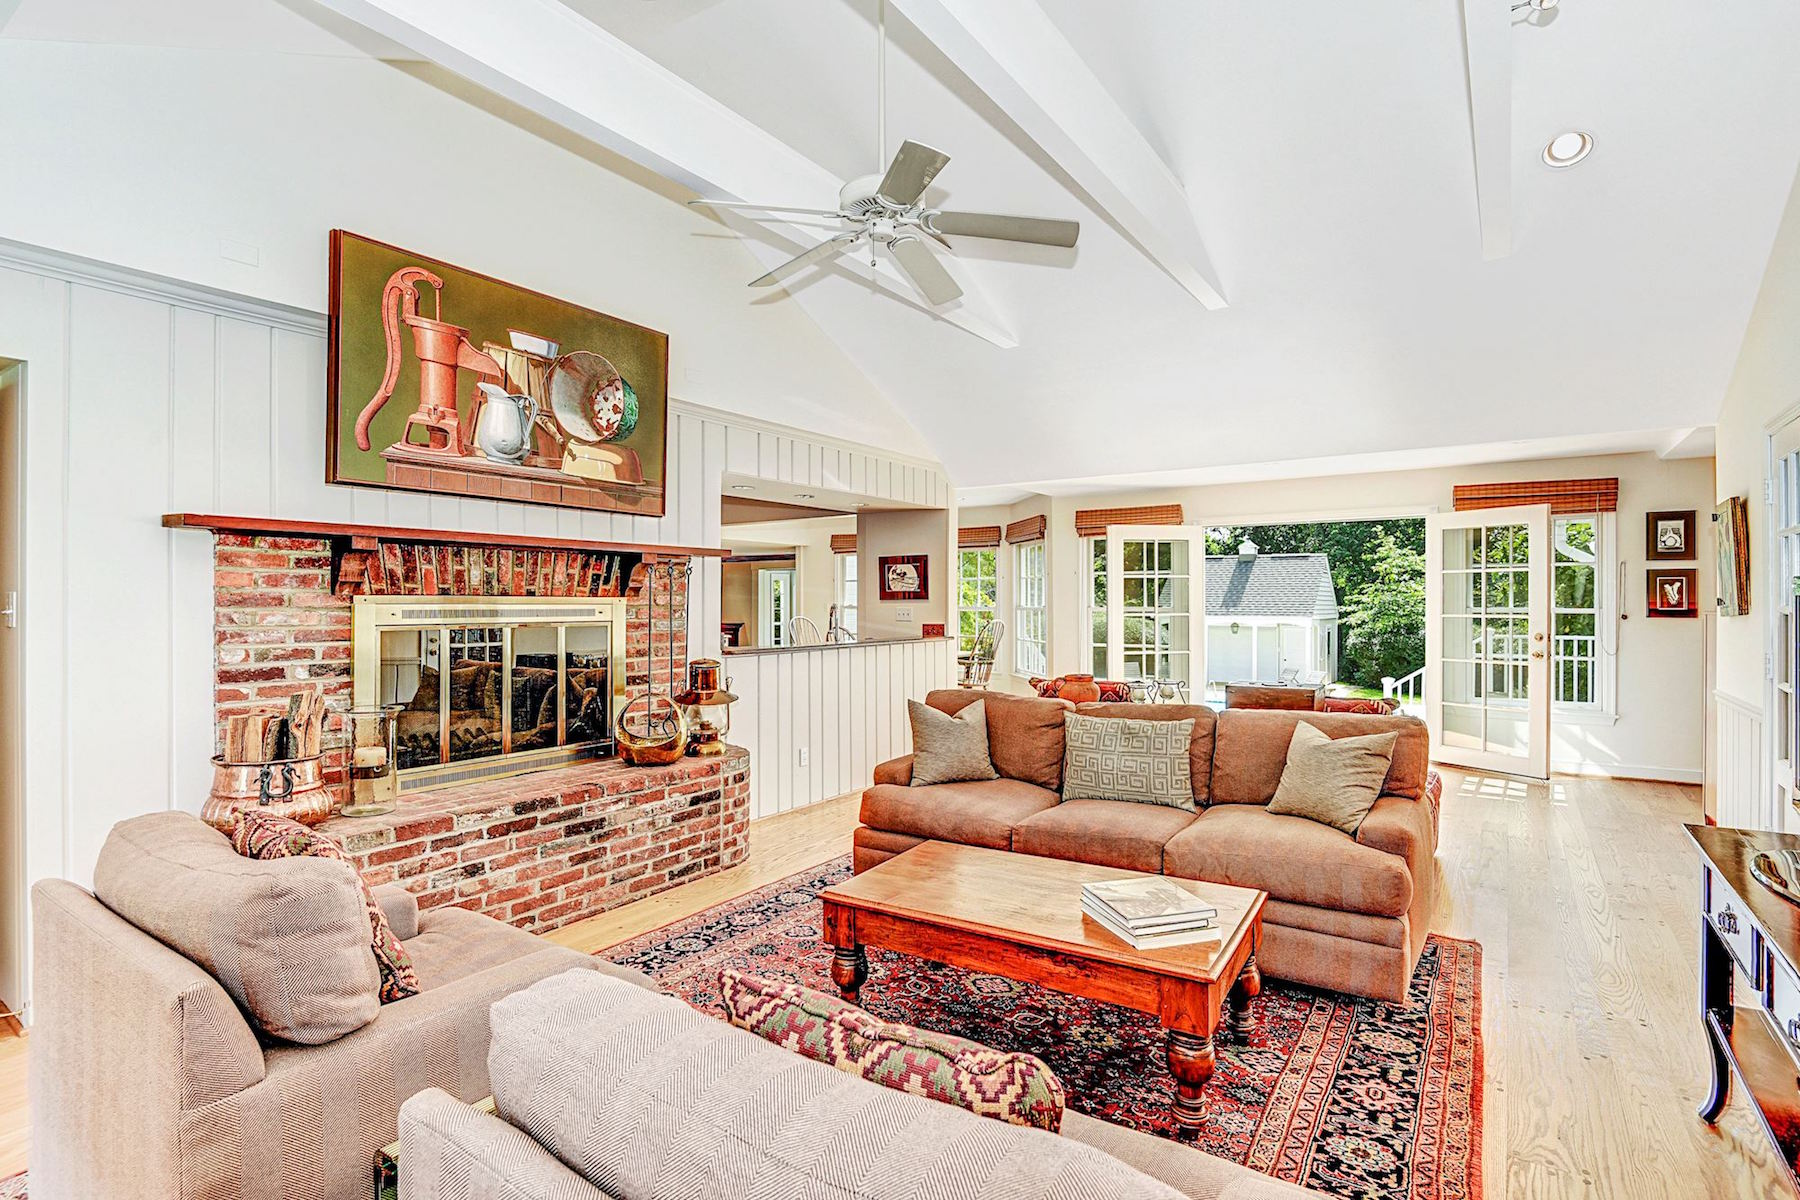 Additional photo for property listing at 8810 Saunders Ln 8810 Saunders Ln Bethesda, Maryland 20817 United States